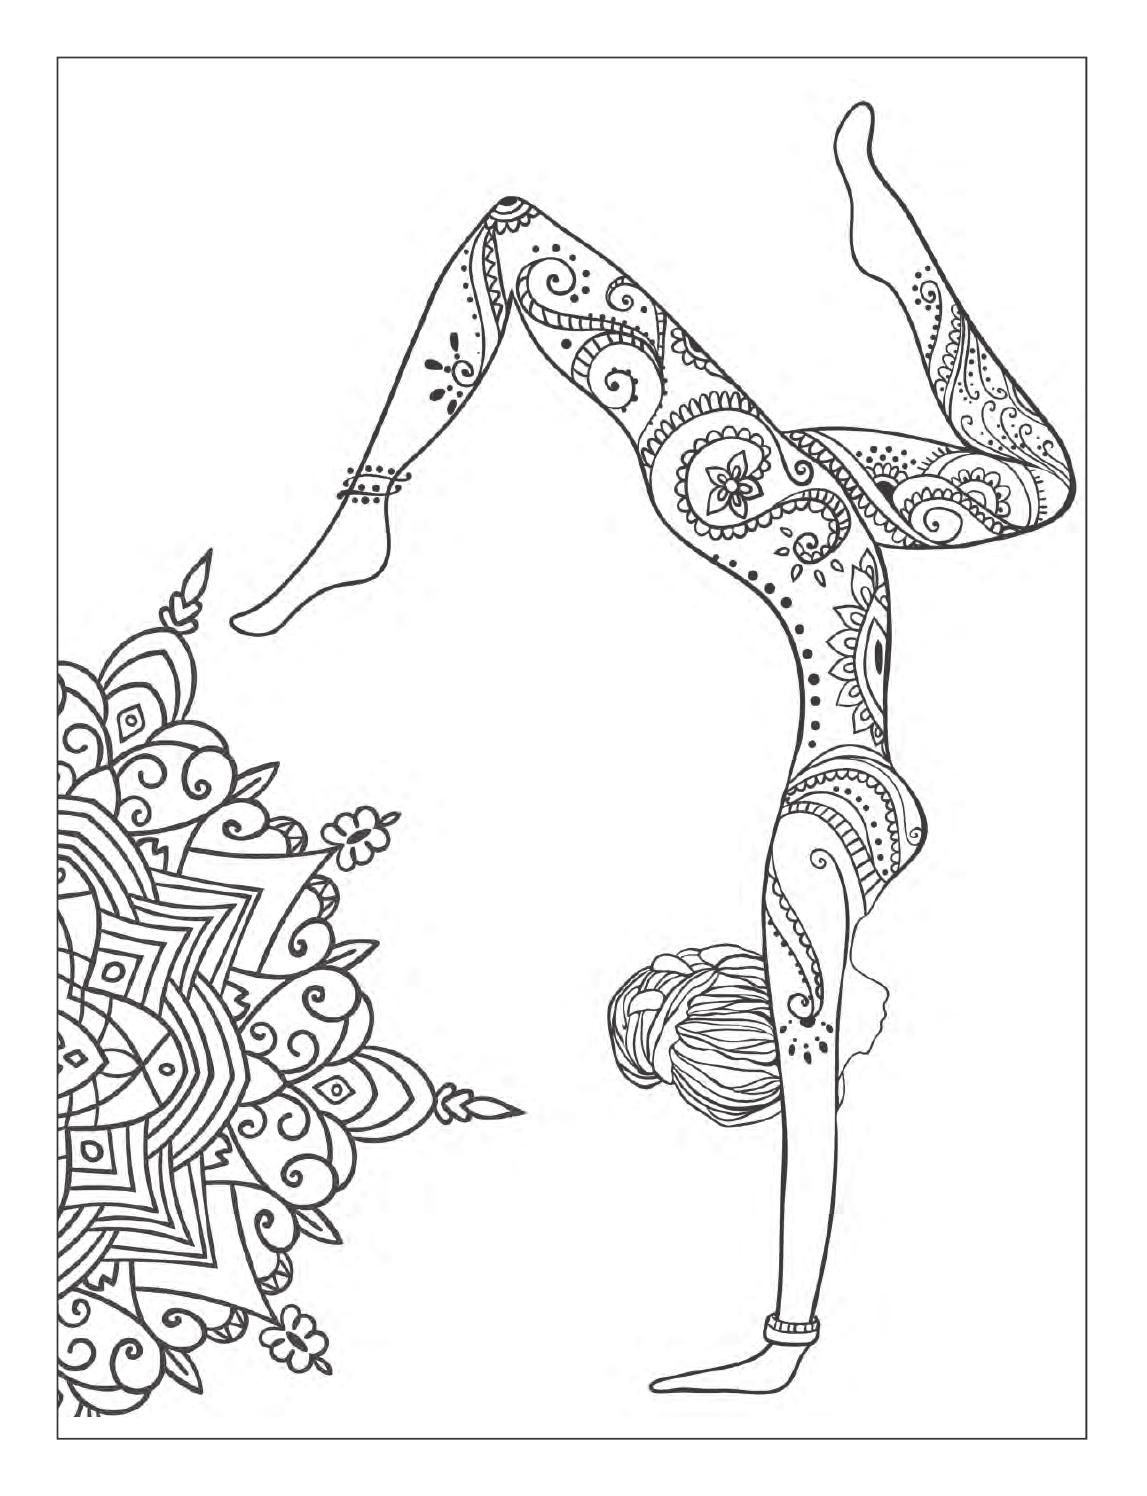 yoga and meditation coloring book for adults with yoga poses and mandalas coloring pages. Black Bedroom Furniture Sets. Home Design Ideas